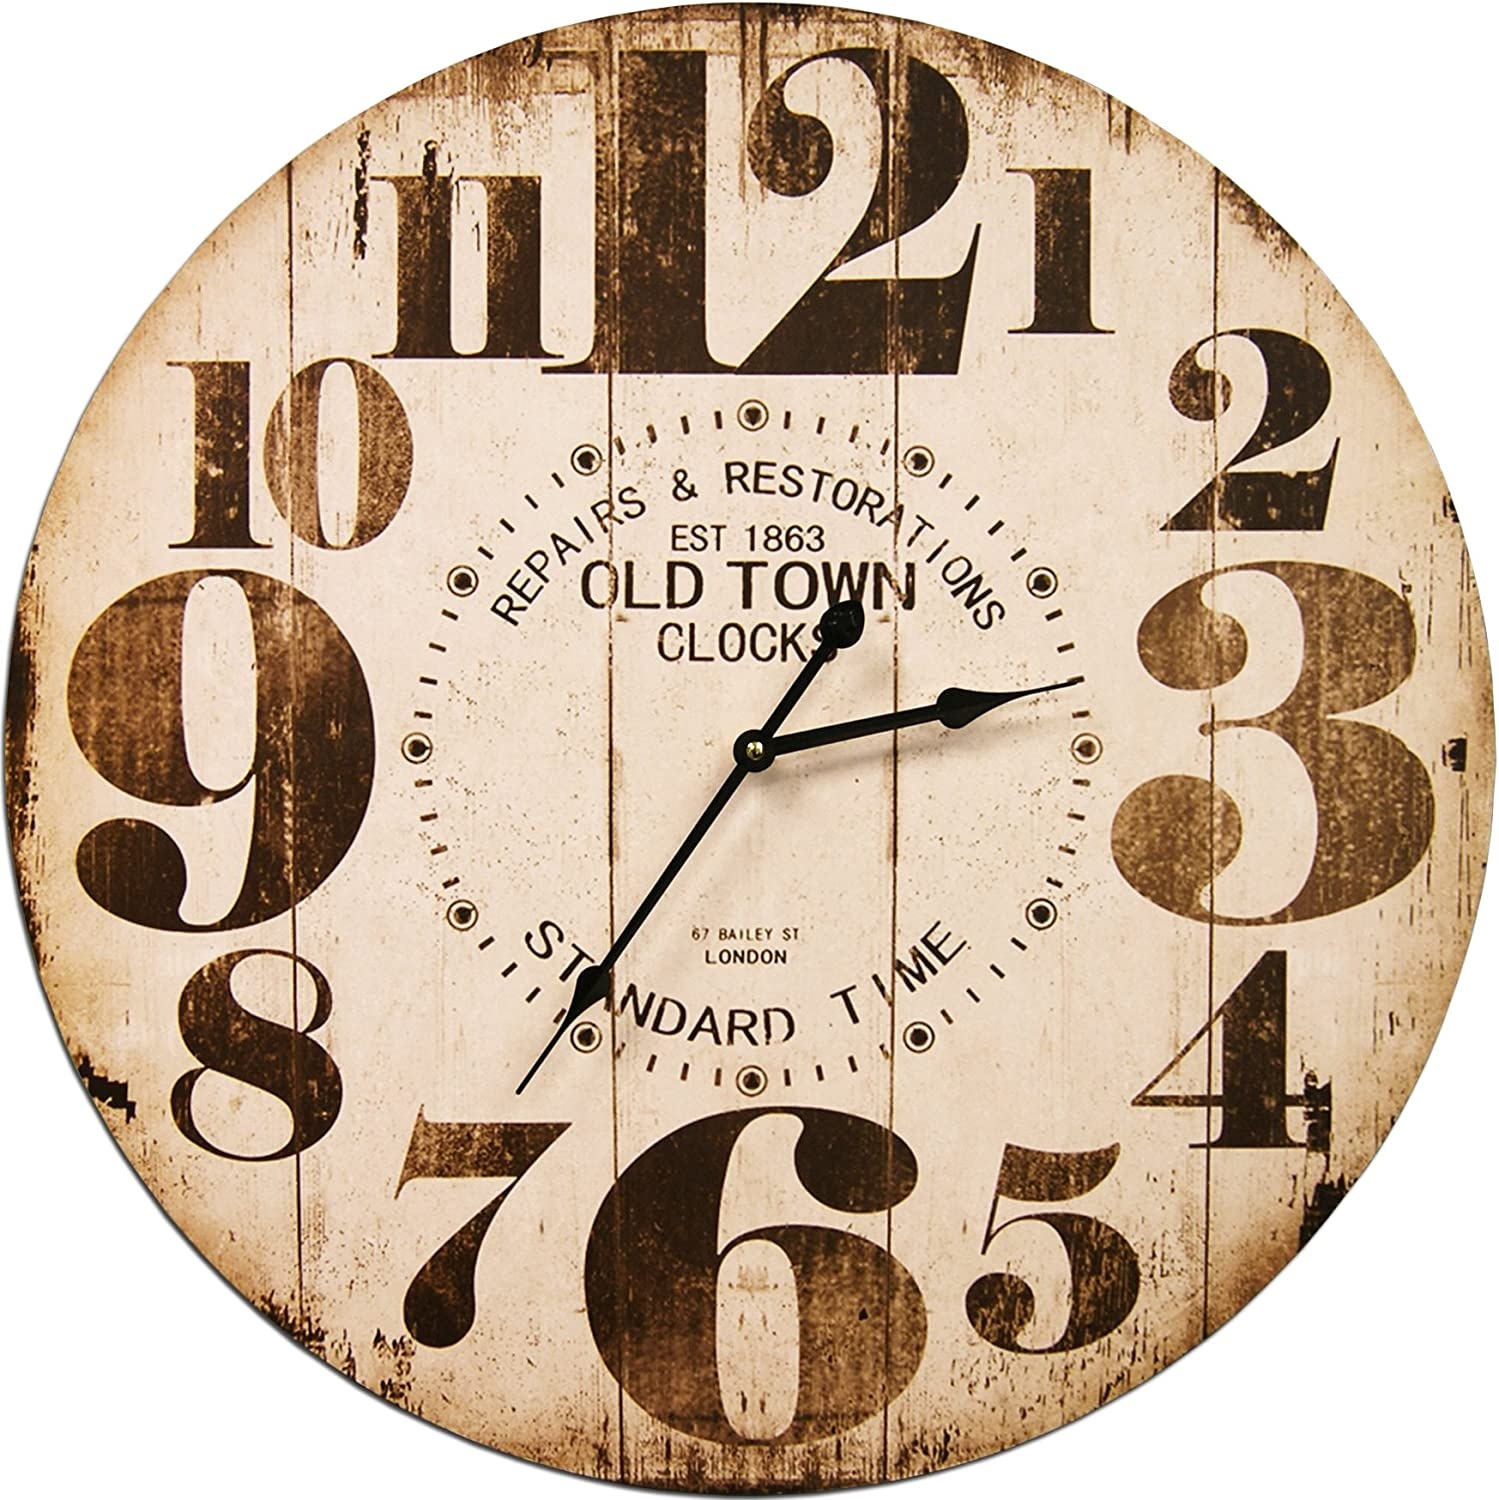 Round Off White Decorative Wall Clock With Big Numbers And Distressed Old Town face 23 x 23 inches Quartz movement